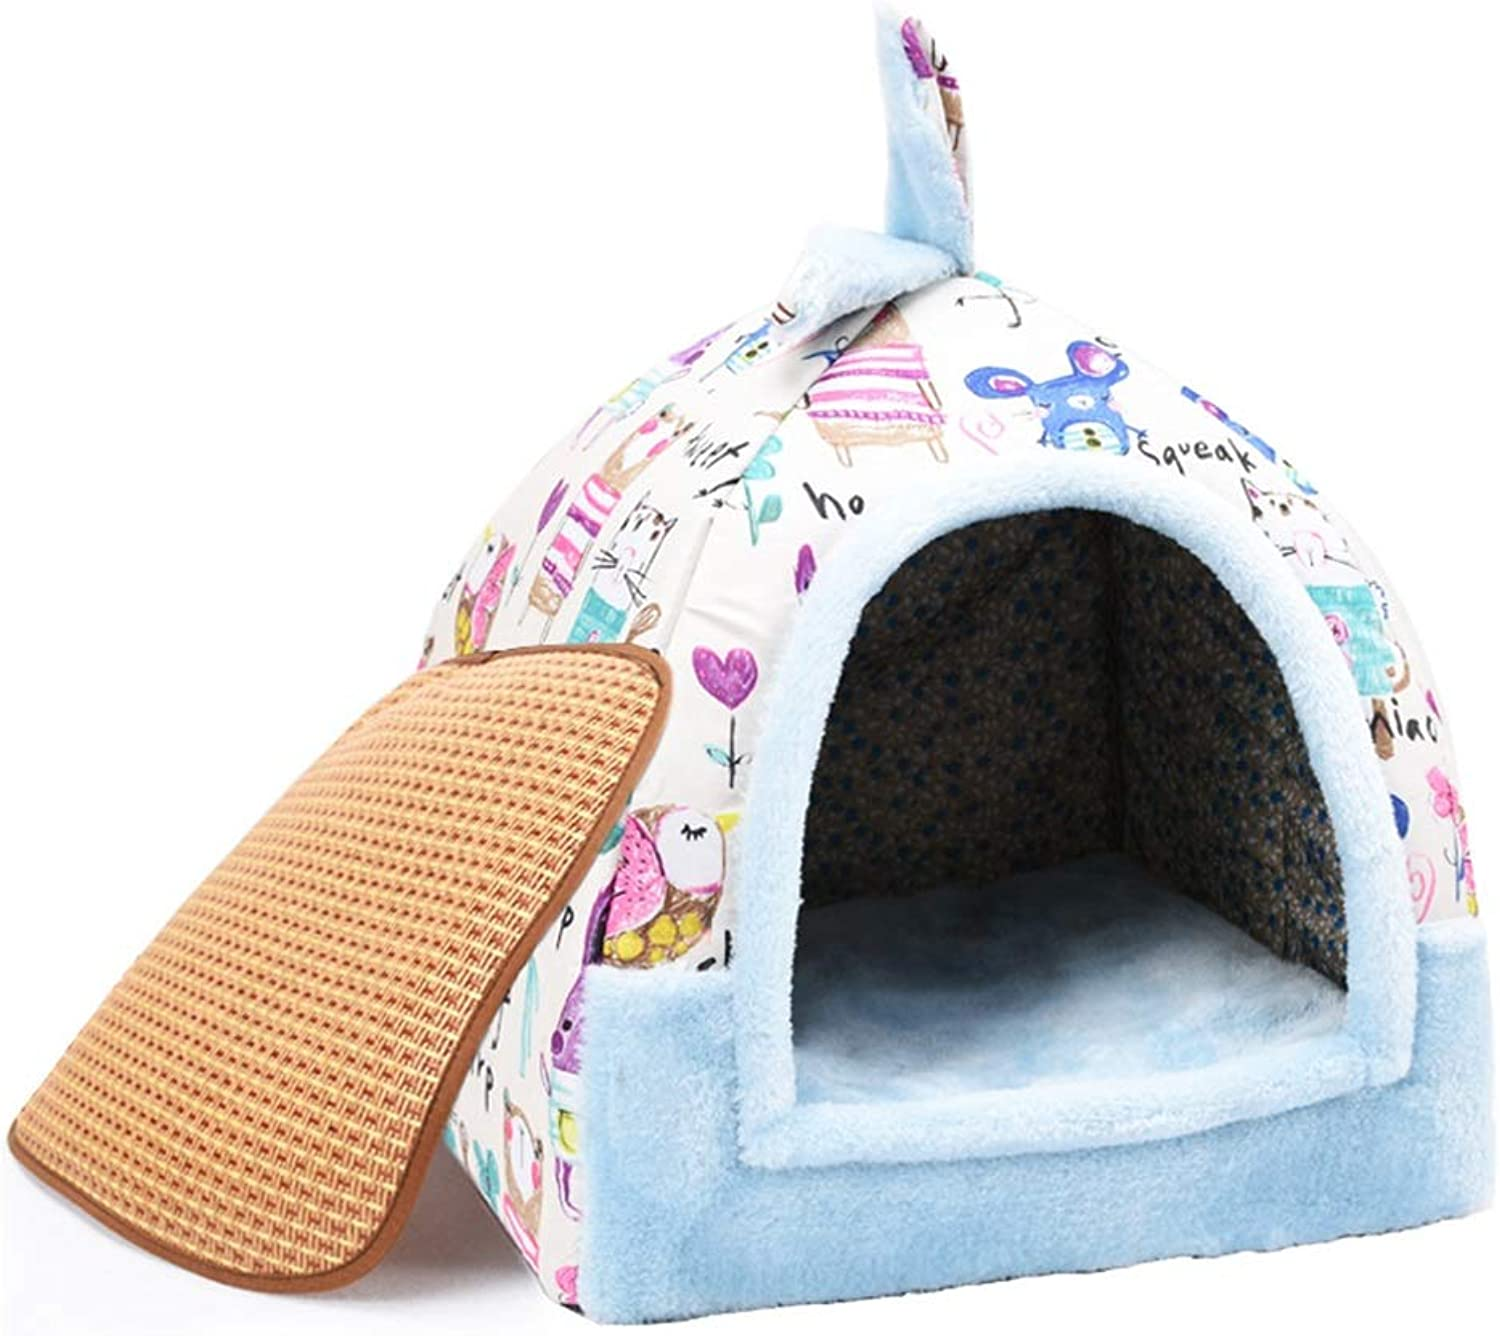 Pet Nest, Cat Kitten Puppy Dog Soft Kennel Yurt Winter Dualuse Removable and Washable Pet House Cave Nest Bed Basket (color   7, Size   M)